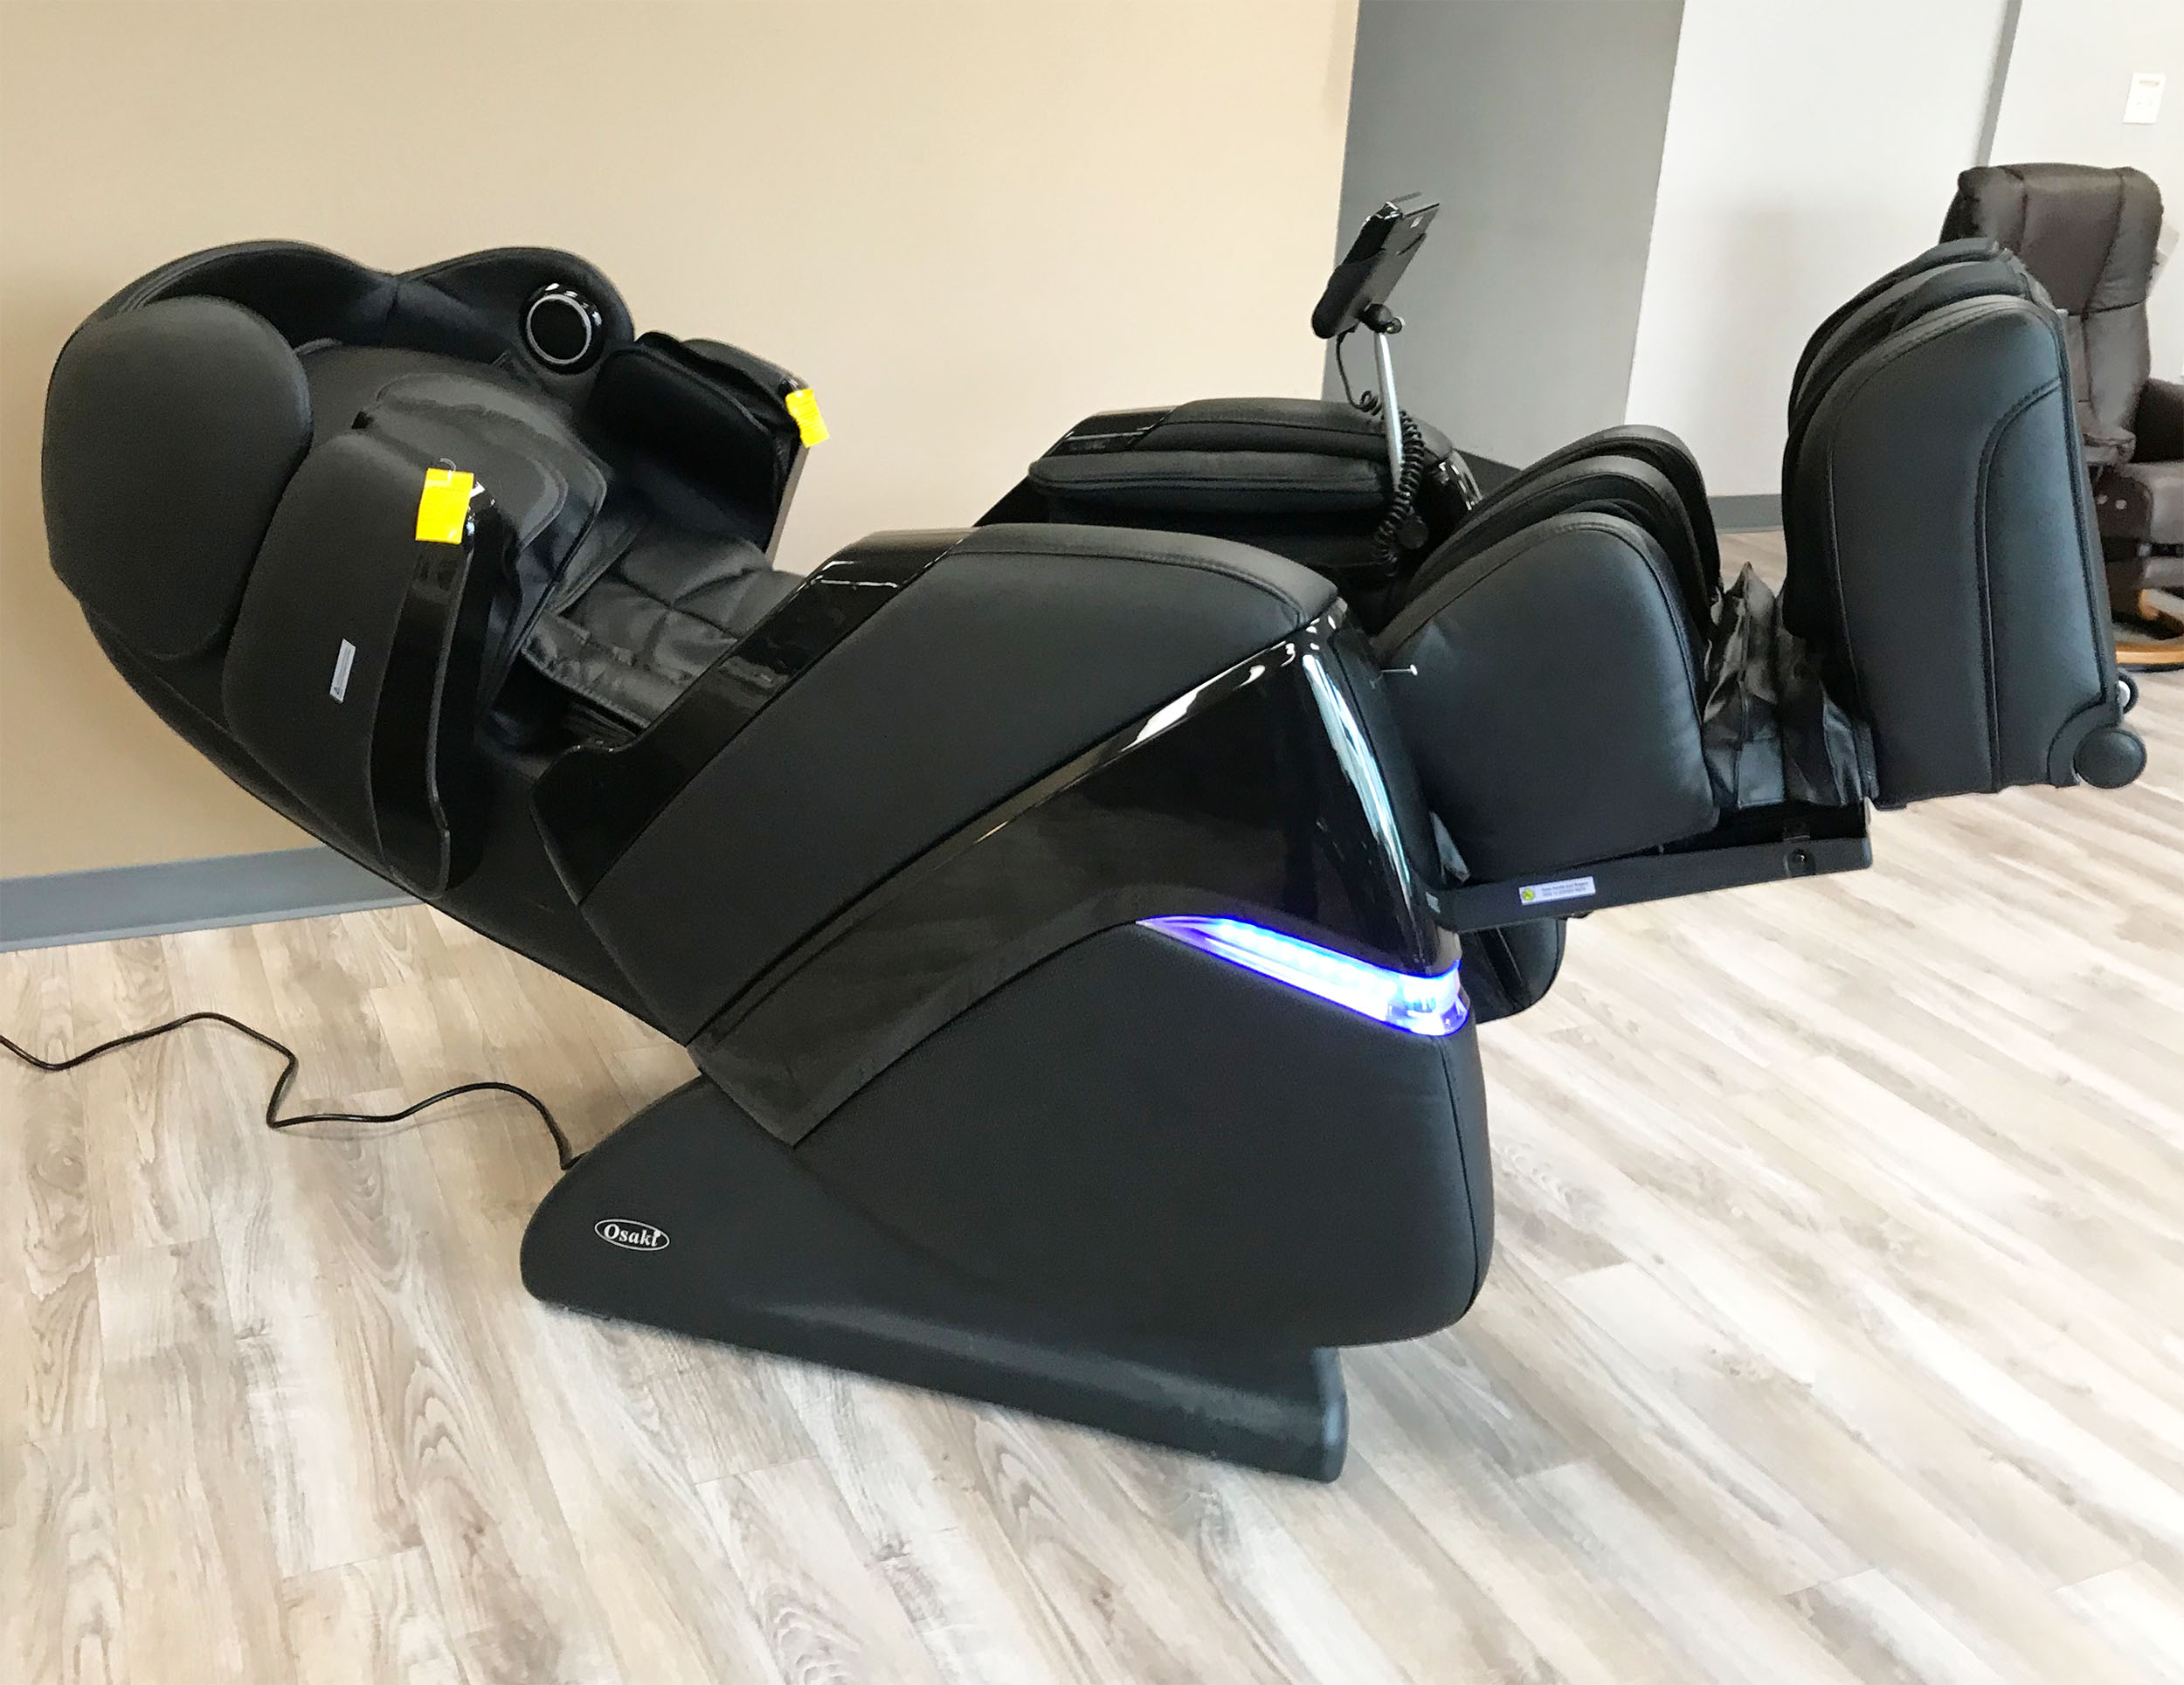 osaki os 3d cyber pro massage chair inflatable 90s zero gravity recliner and